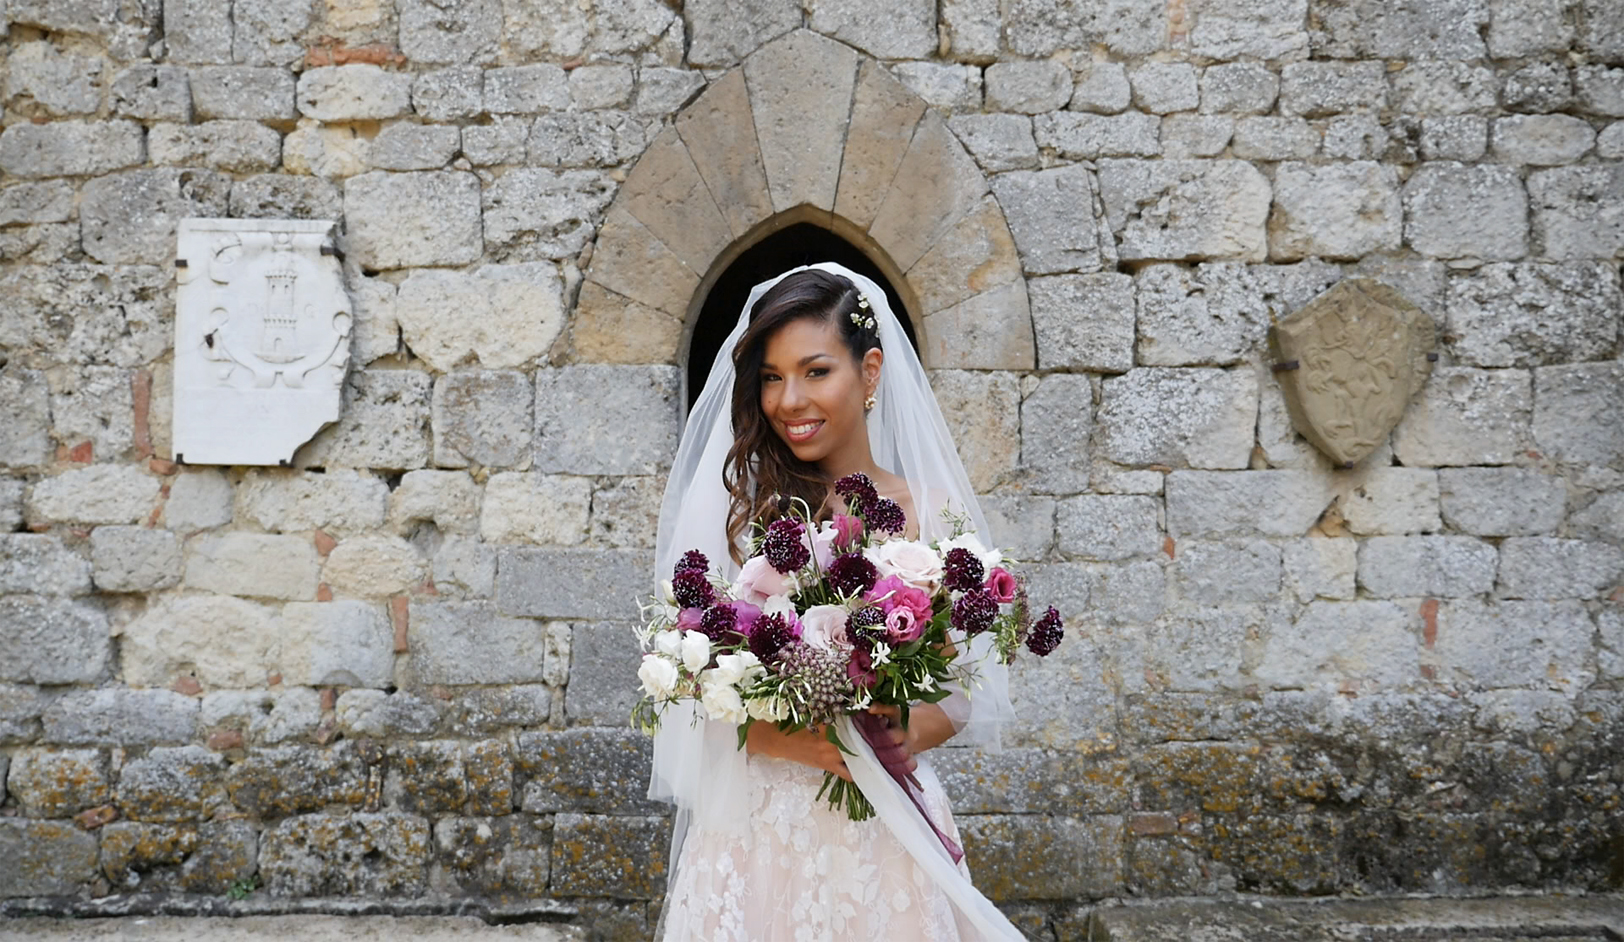 wedding-in-tuscany-bride-san-gimignano.jpg